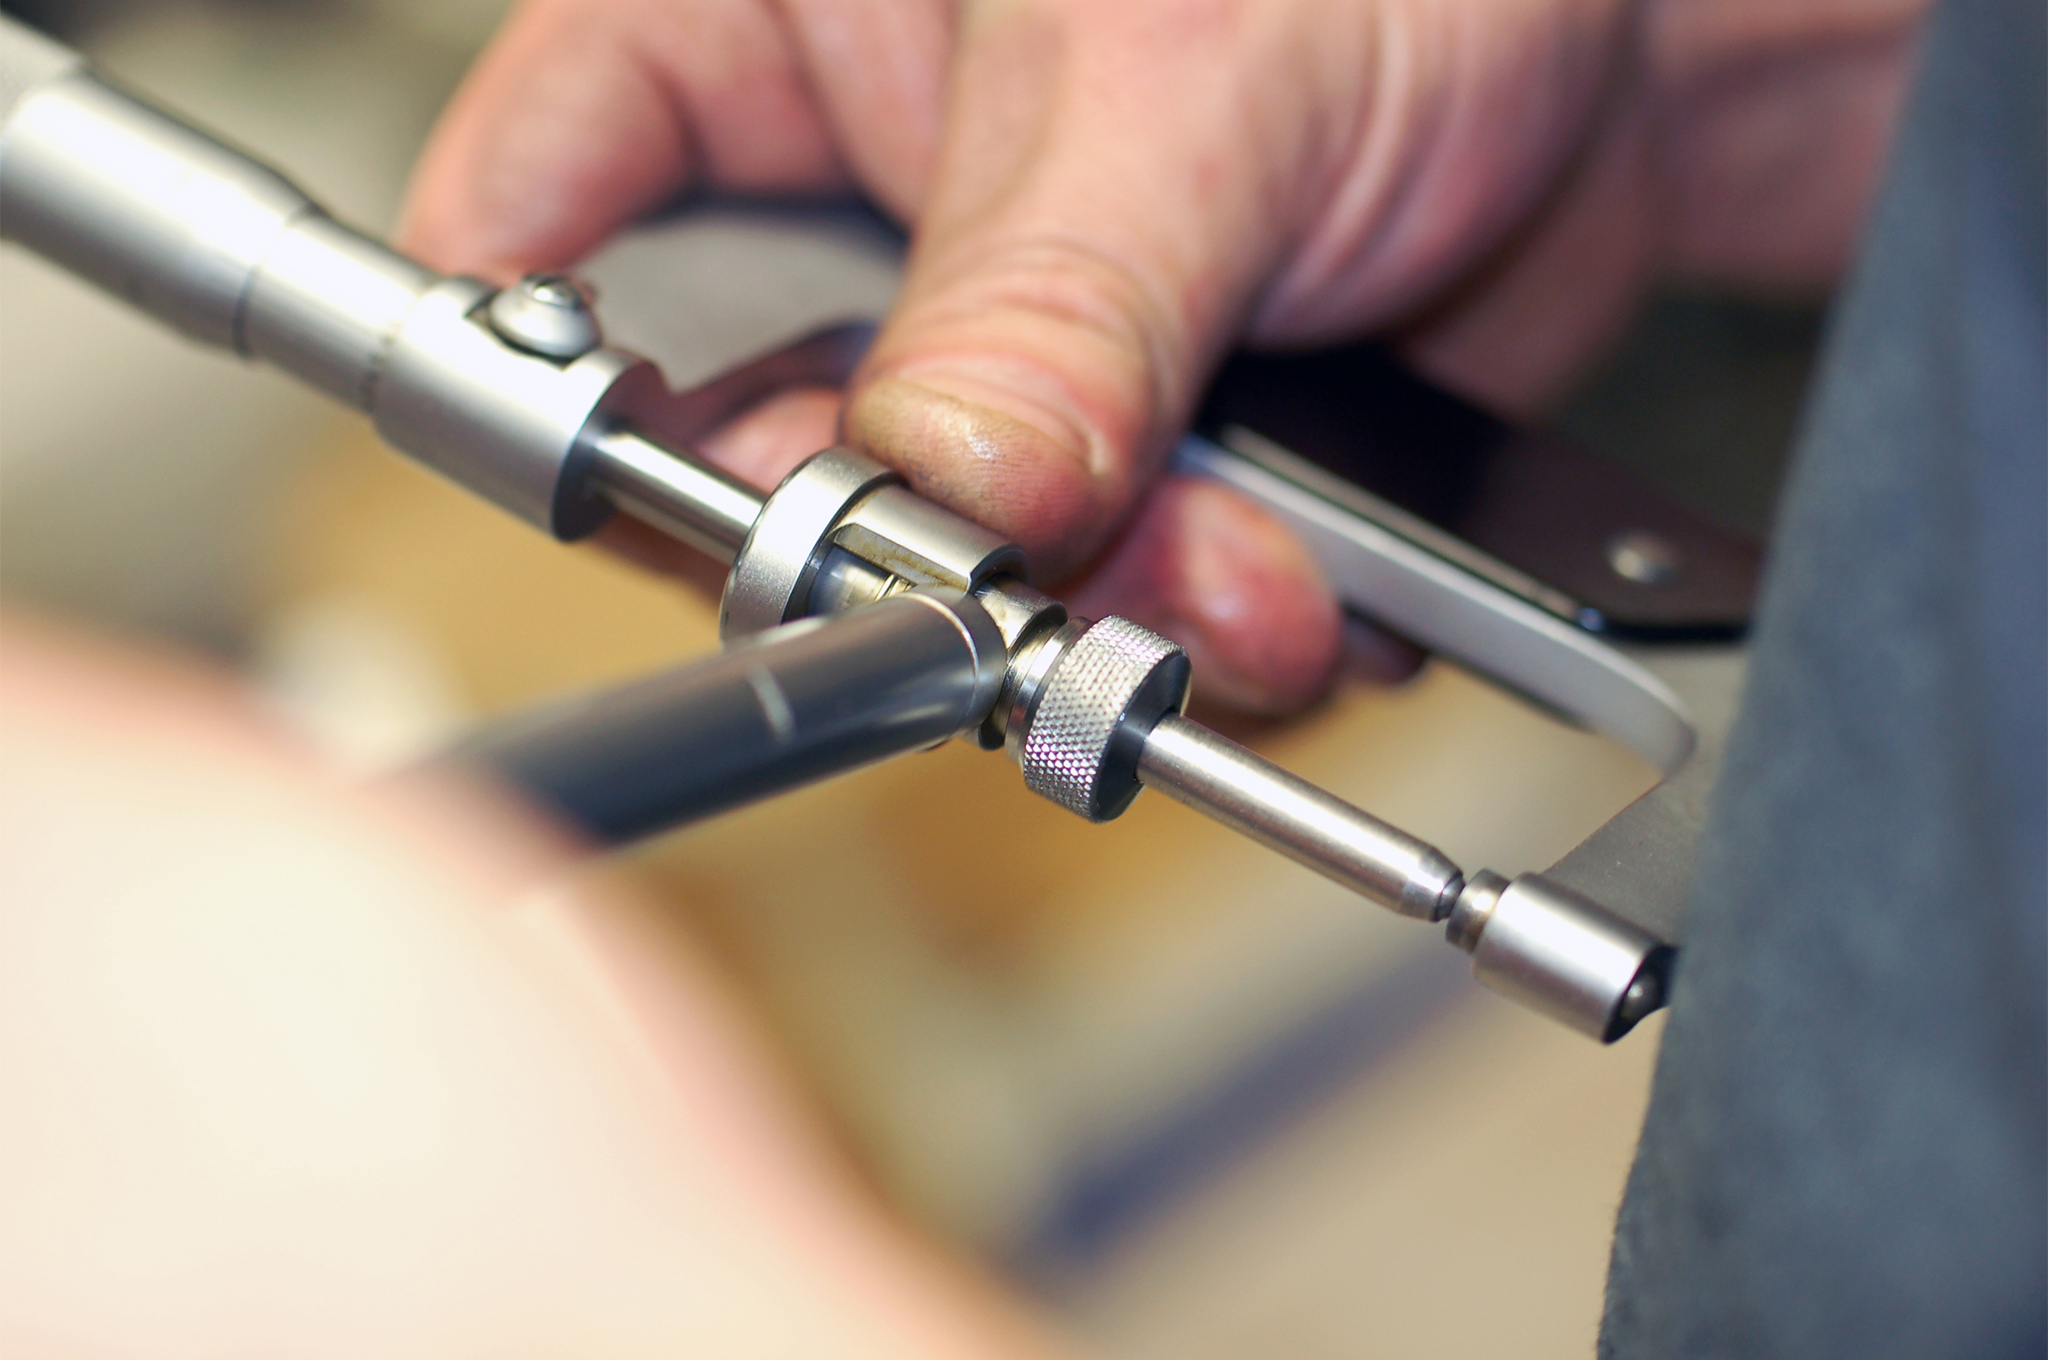 For hard-to-reach areas that need to be checked, the tool of choice is a dial bore, you want one that is graduated into ten thousands of an inch or 0.0001; the tool is set from gauge blocks or the appropriate size micrometer. These come in handy for any bore that you need to measure very accurately.